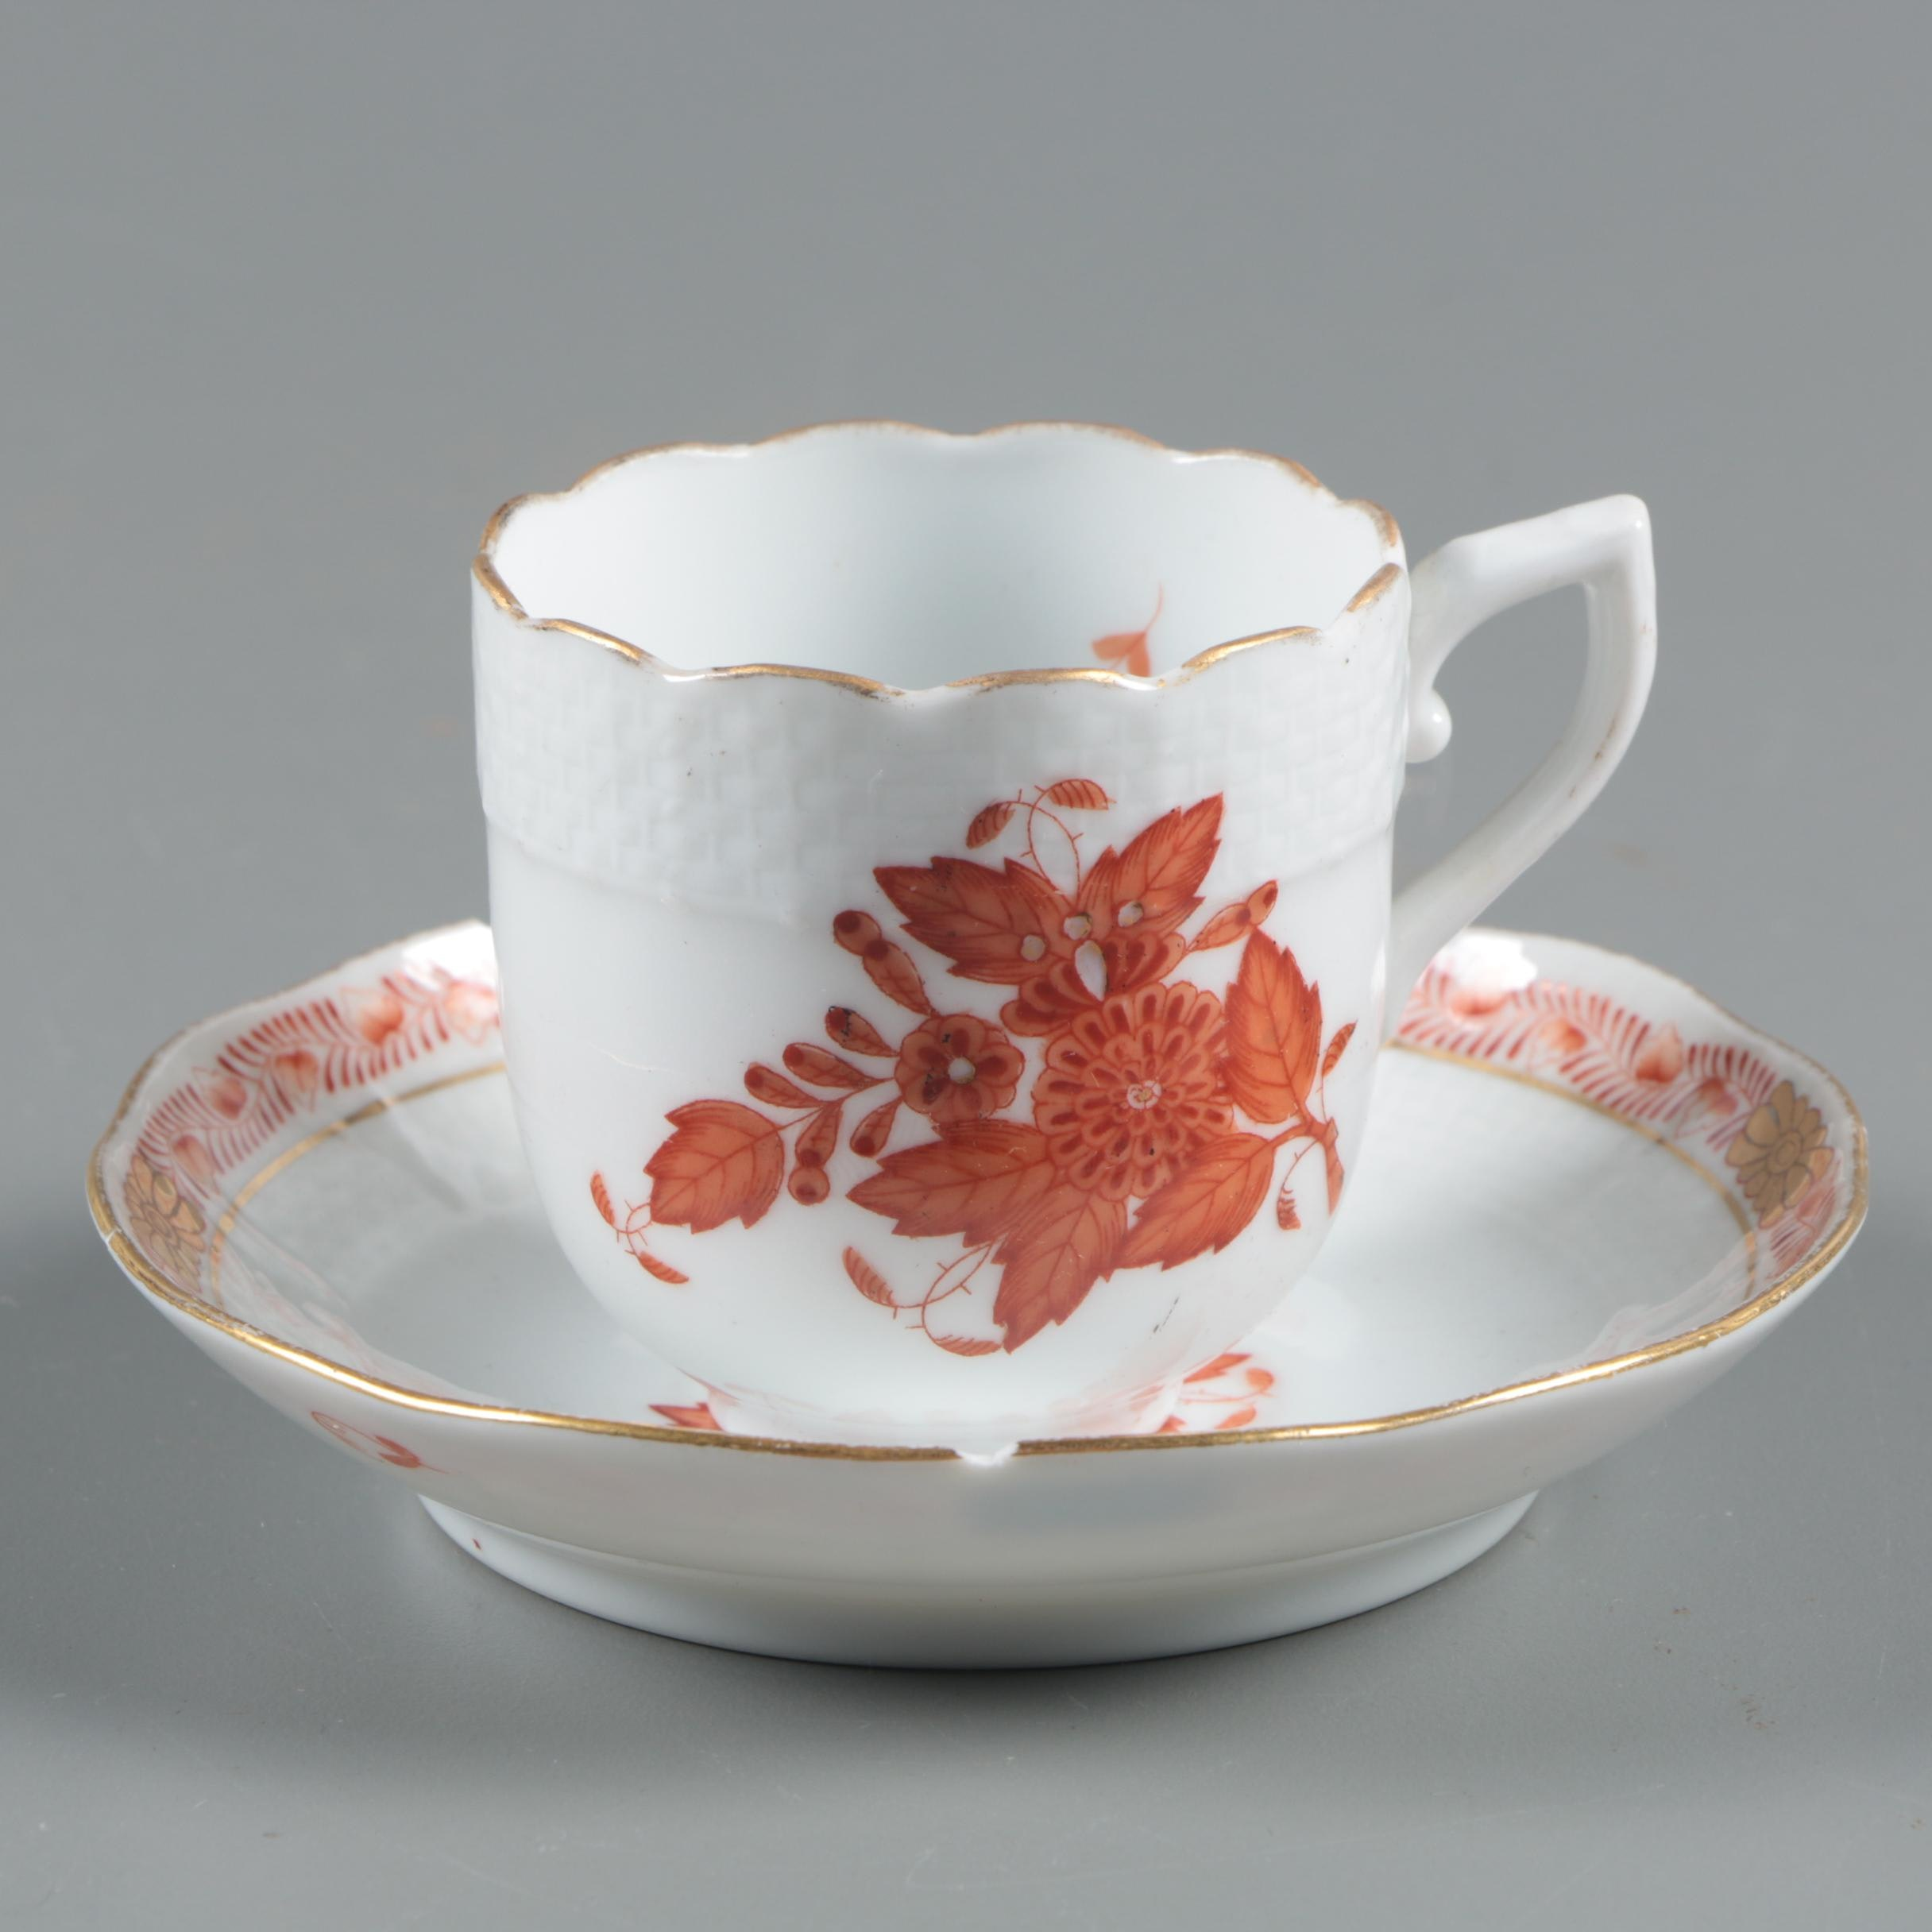 """Herend Hungary """"Chinese Bouquet Rust"""" Porcelain Teacup and Saucer"""